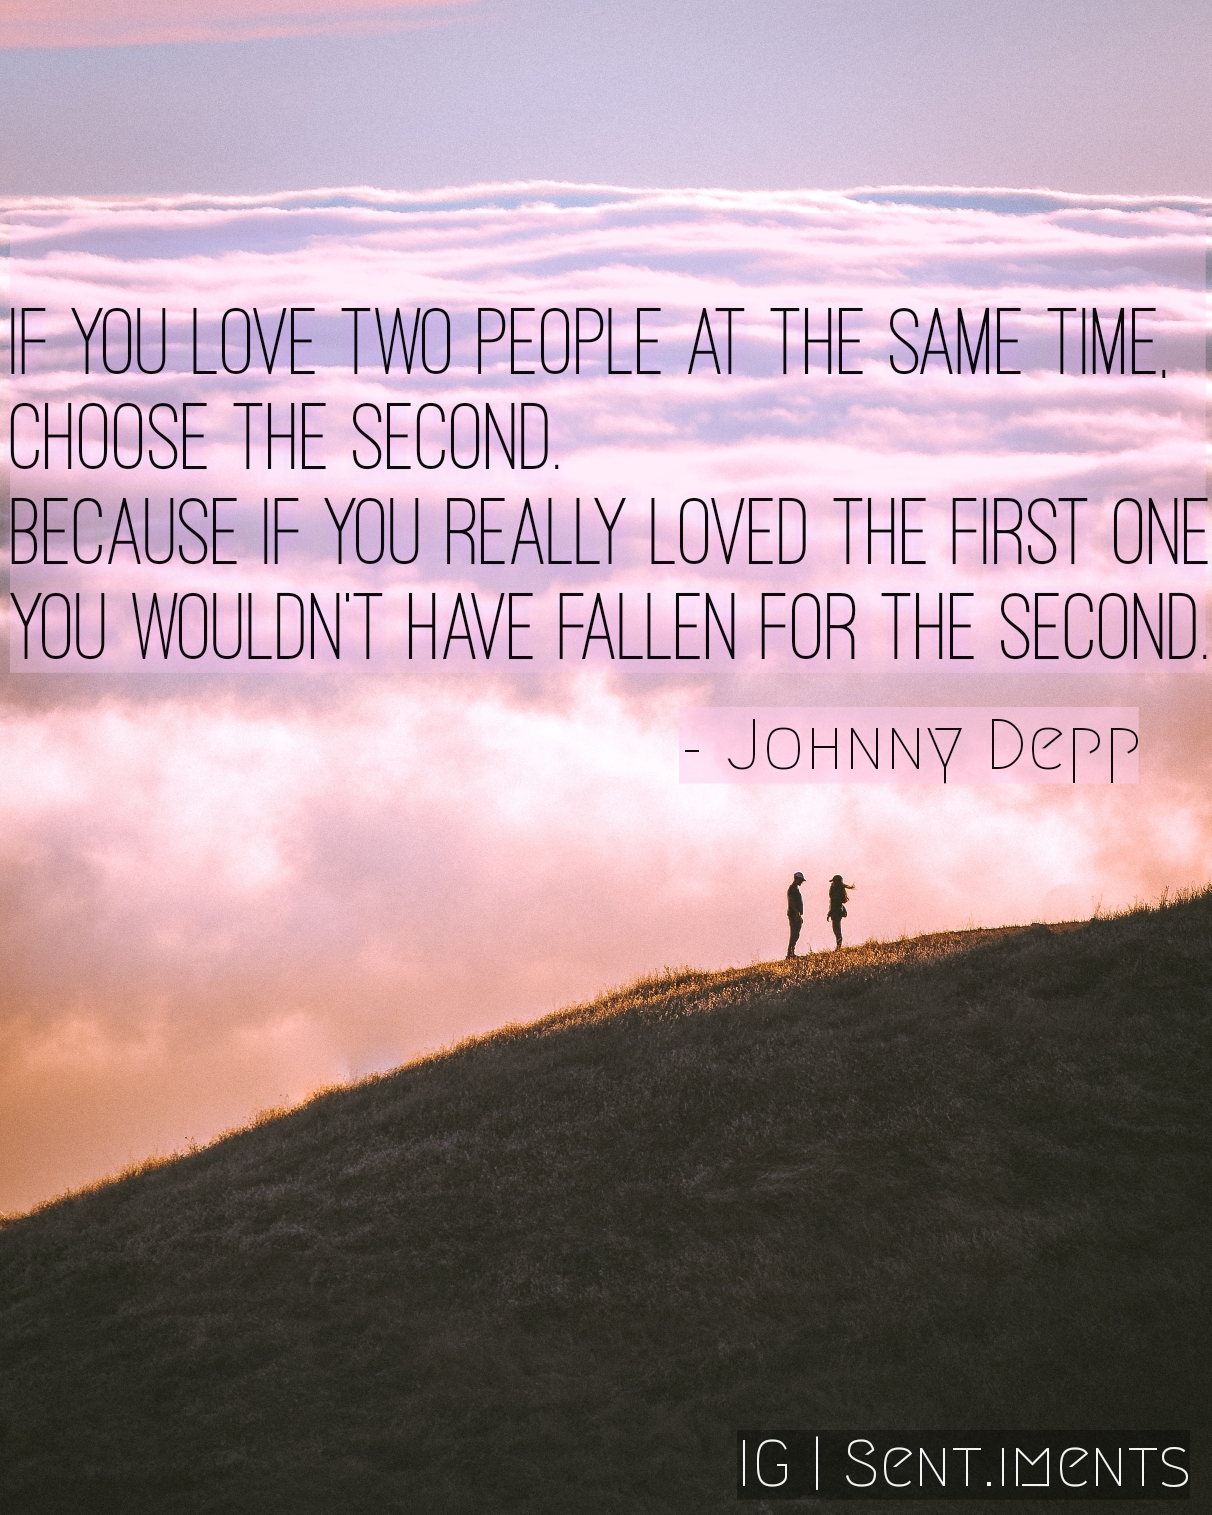 If you love two people at same time……..by Johnny Depp (1212X1515)